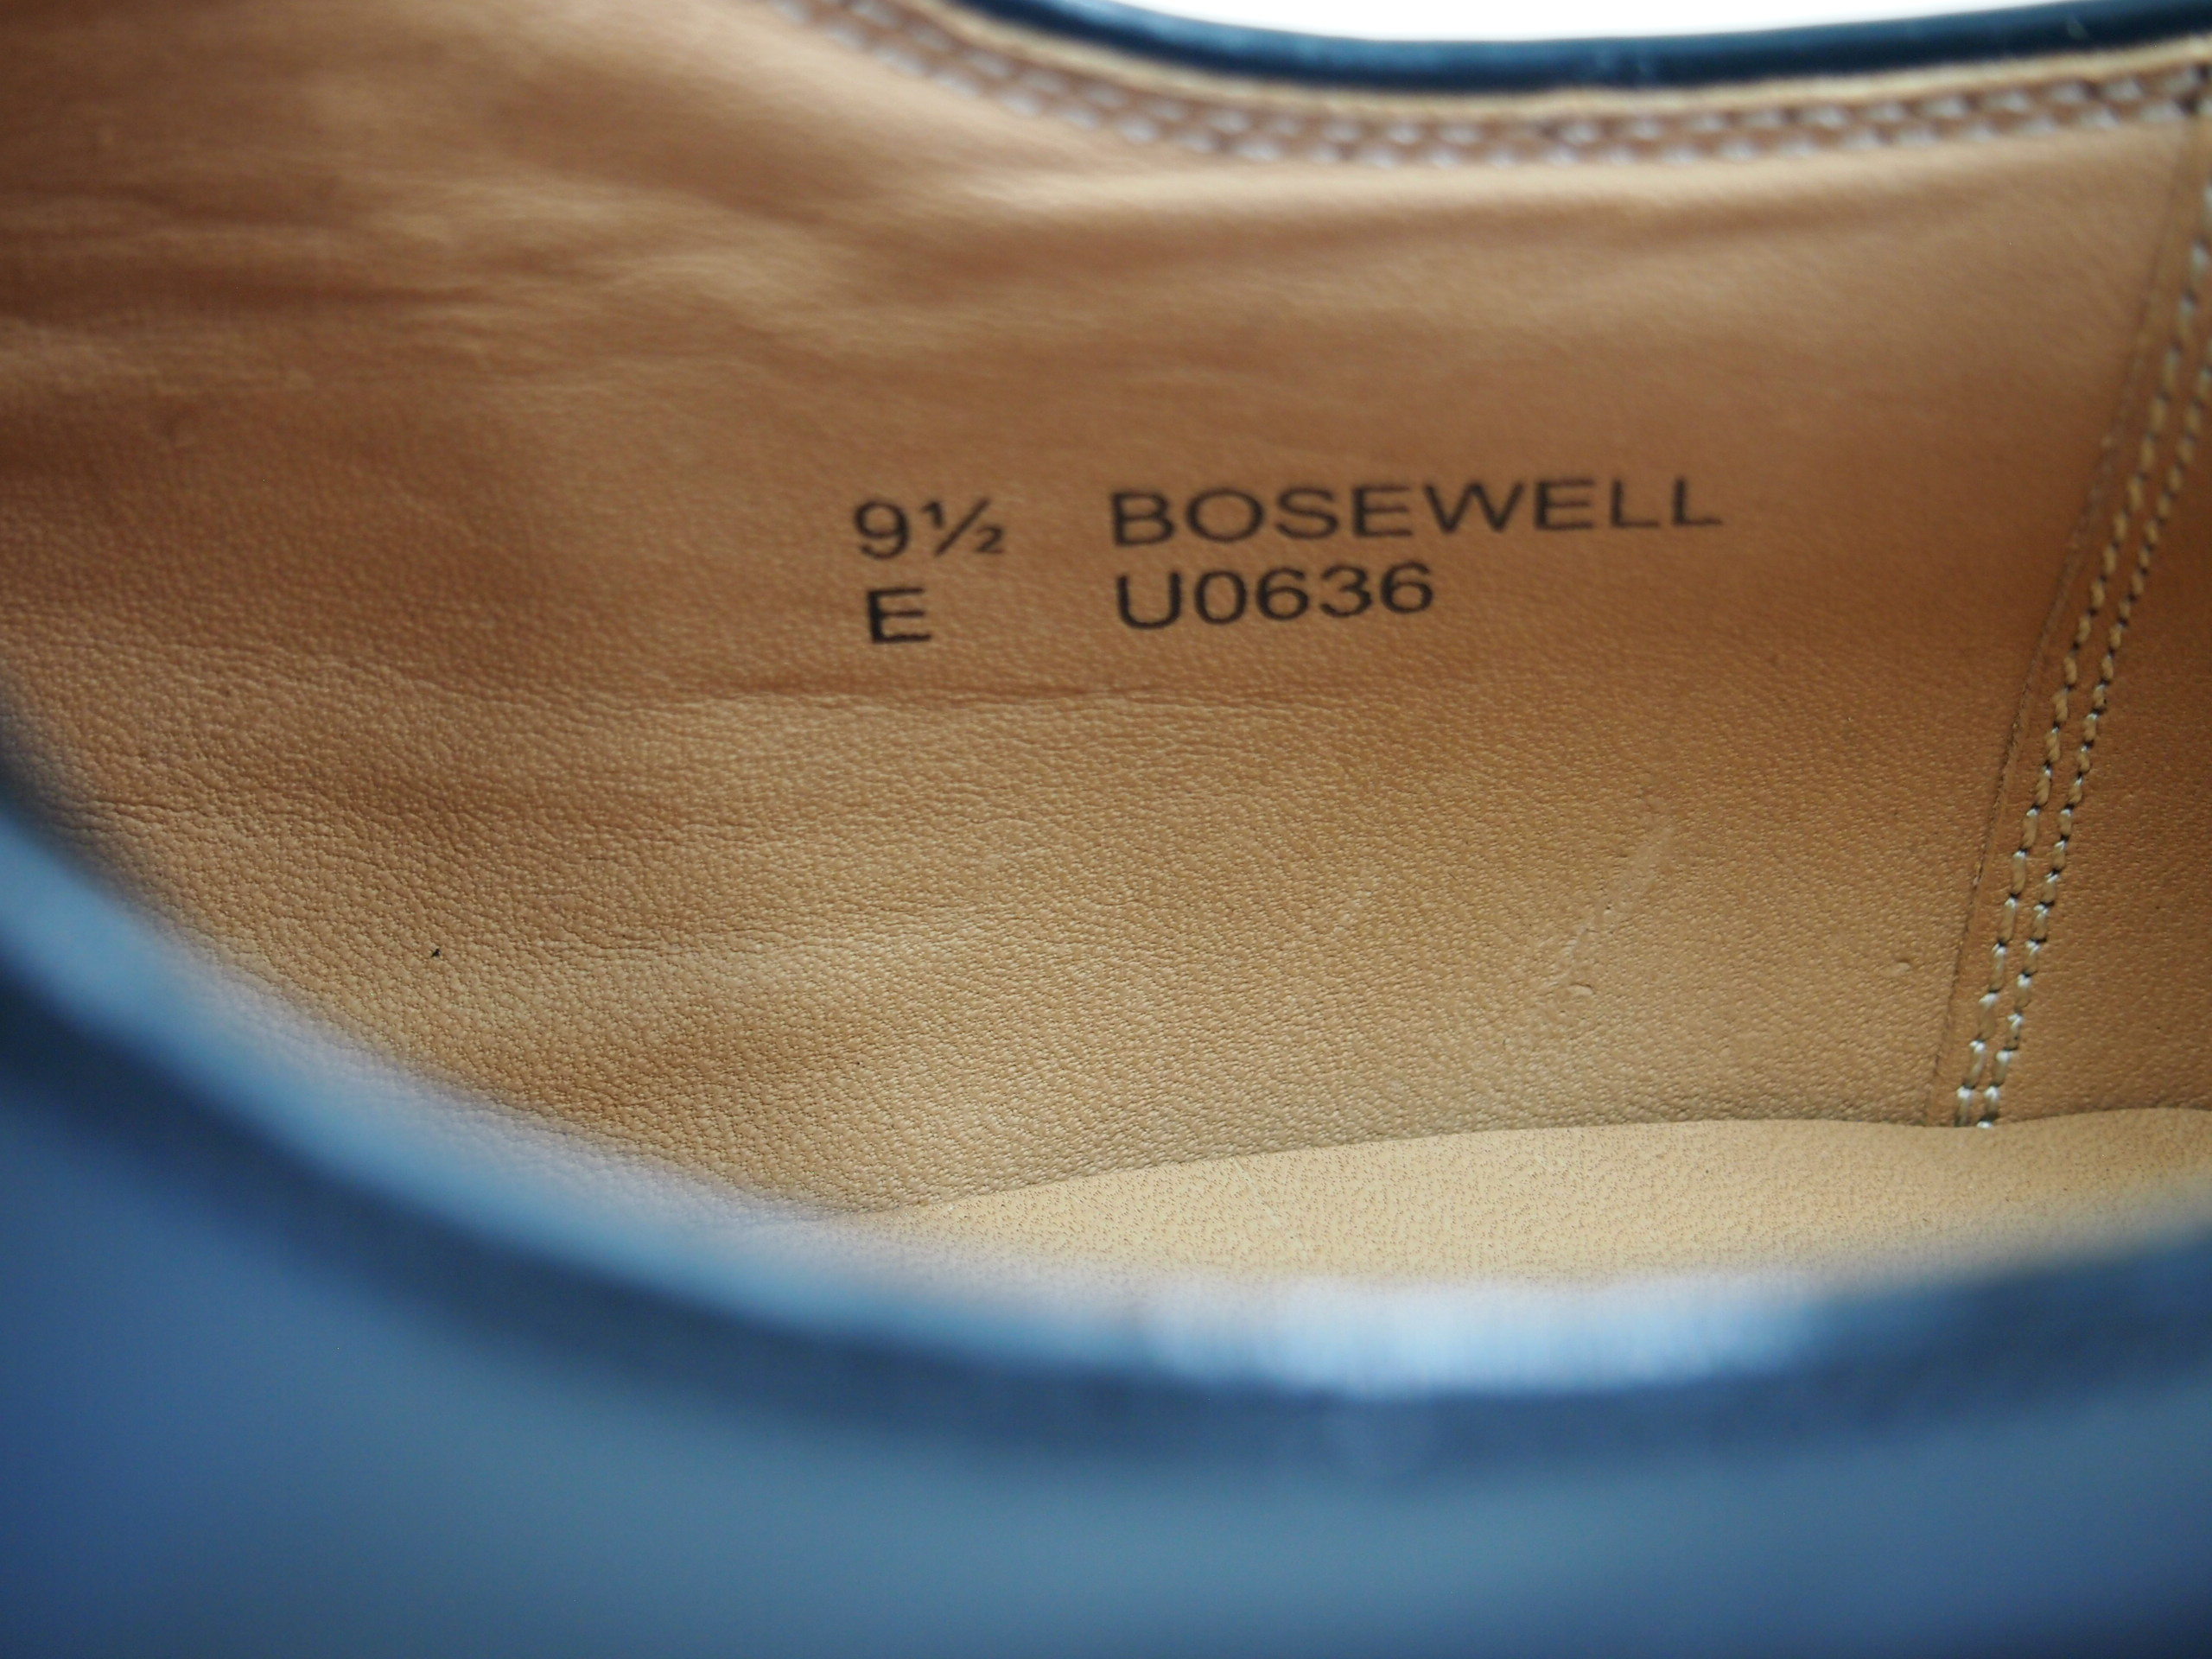 BOSEWELL